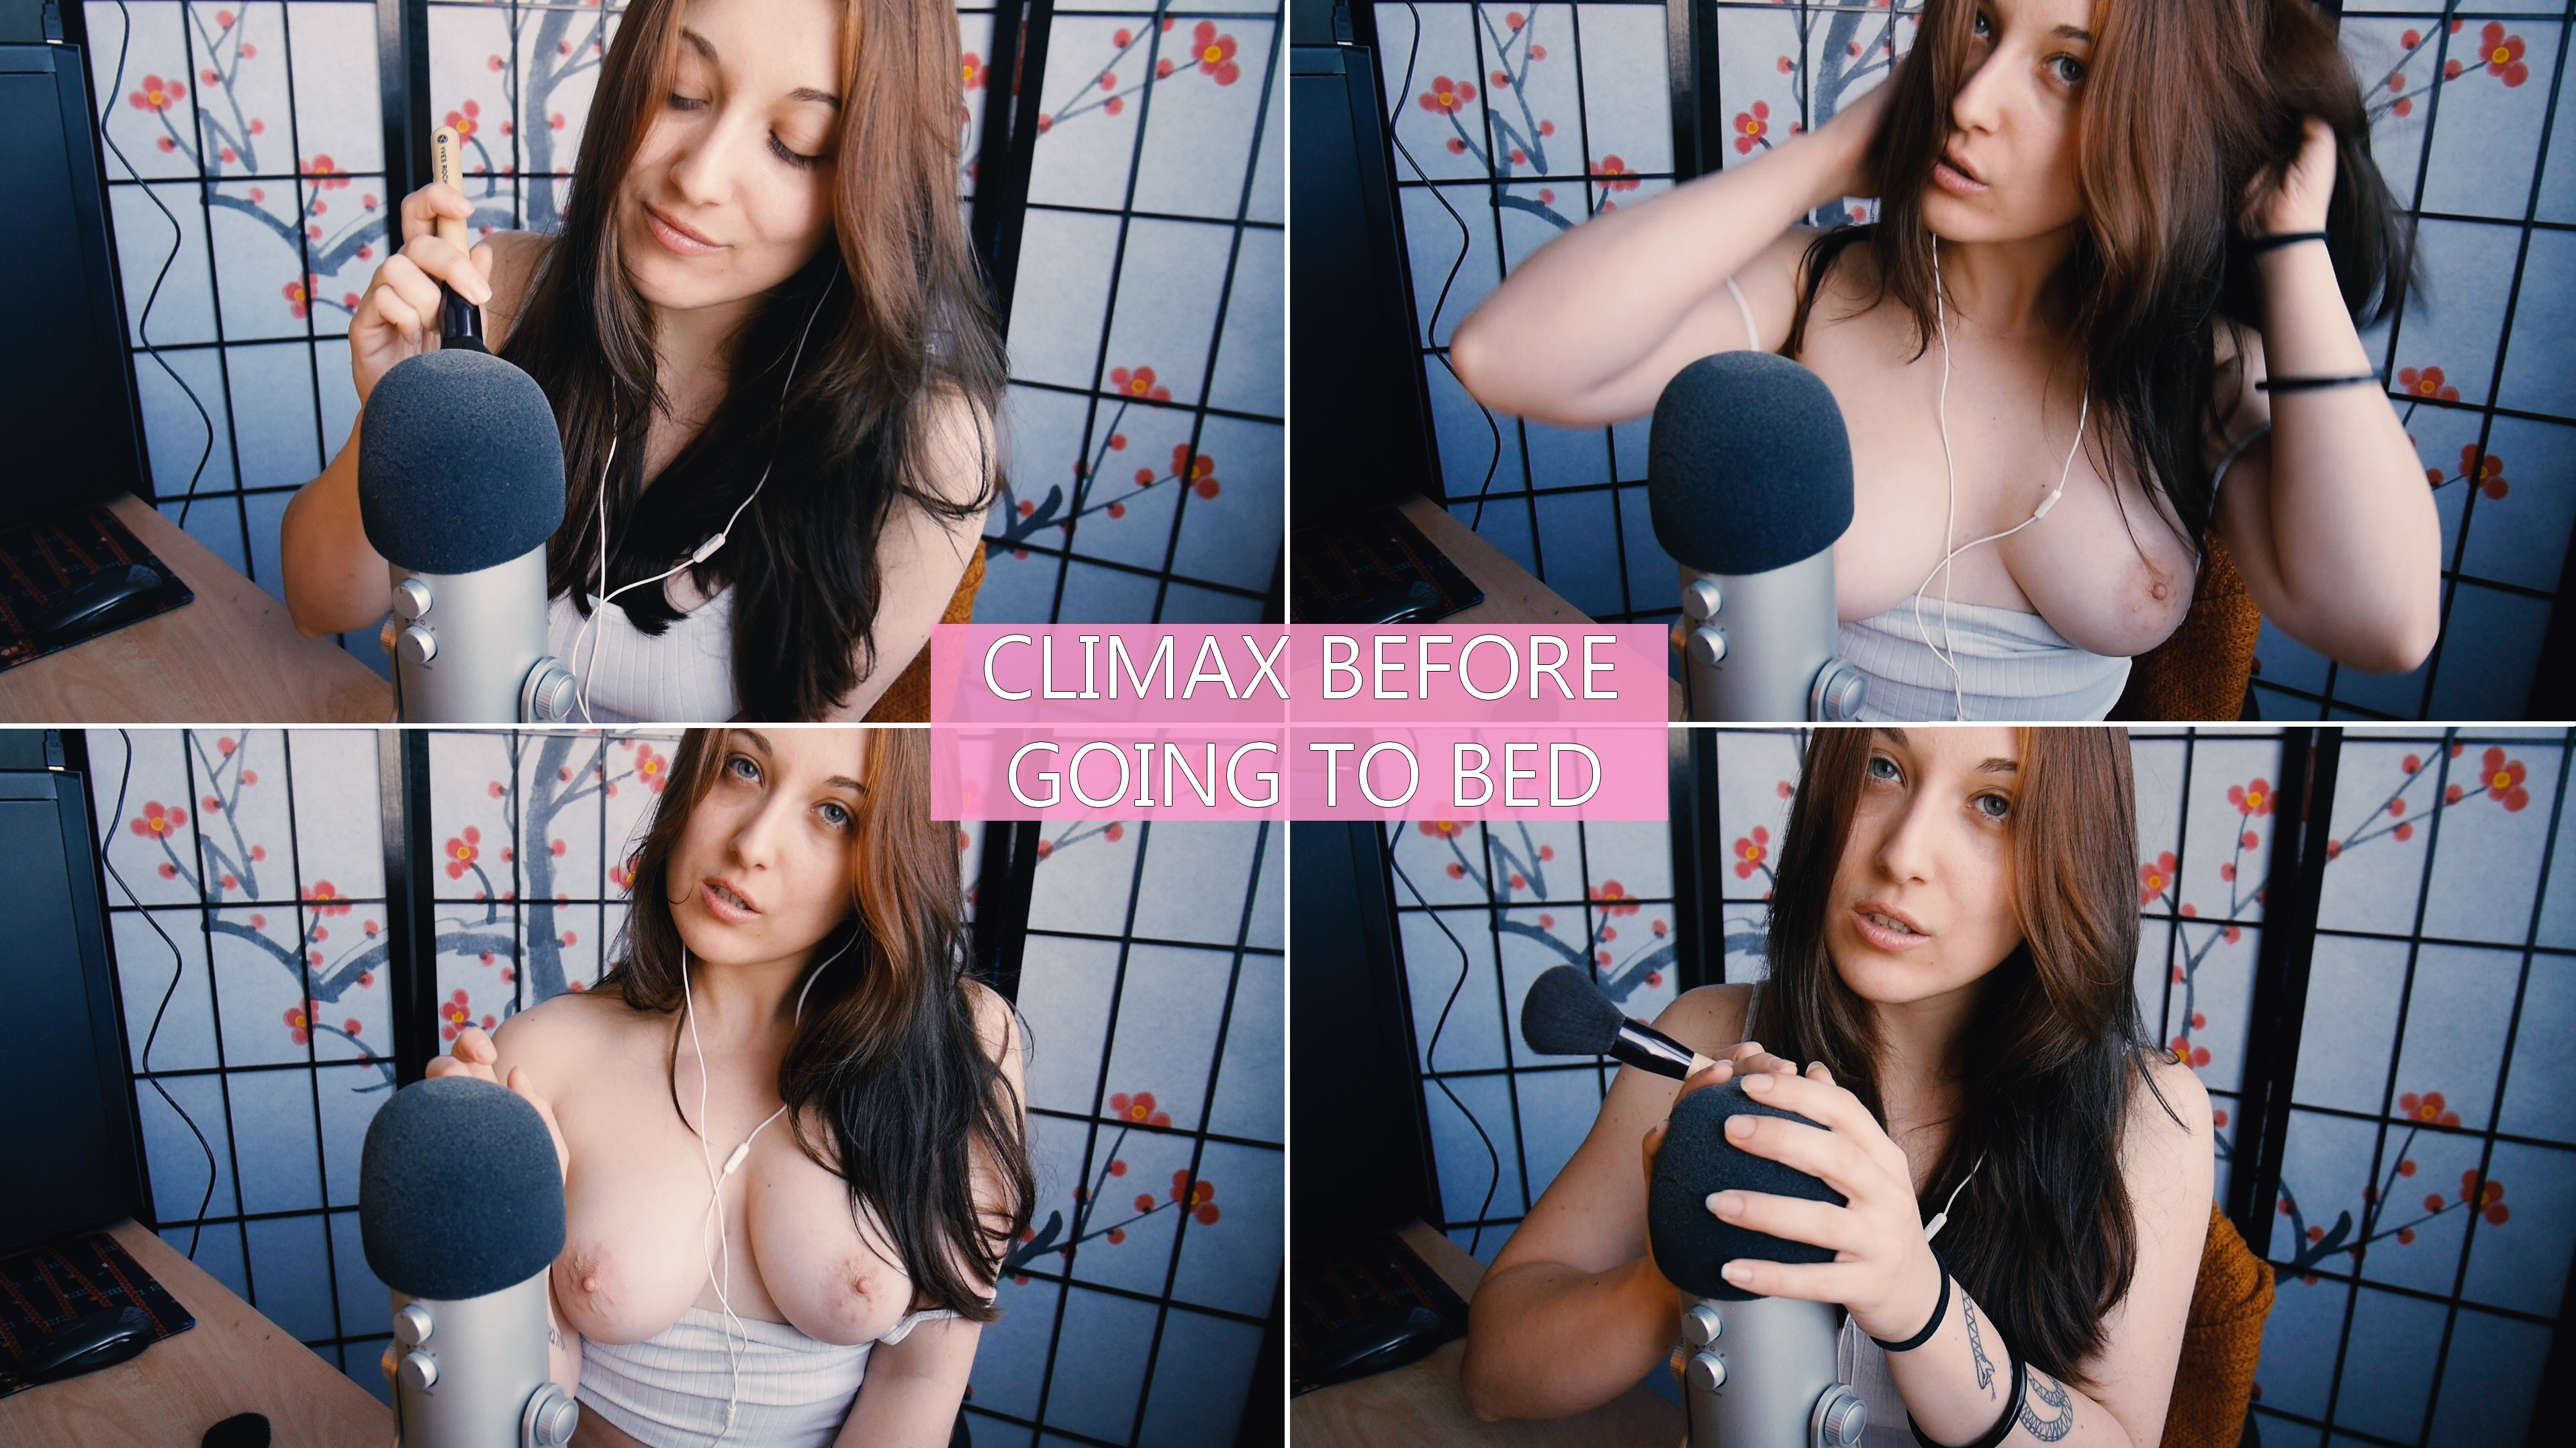 ASMR JOI - Climax Before Going To Bed